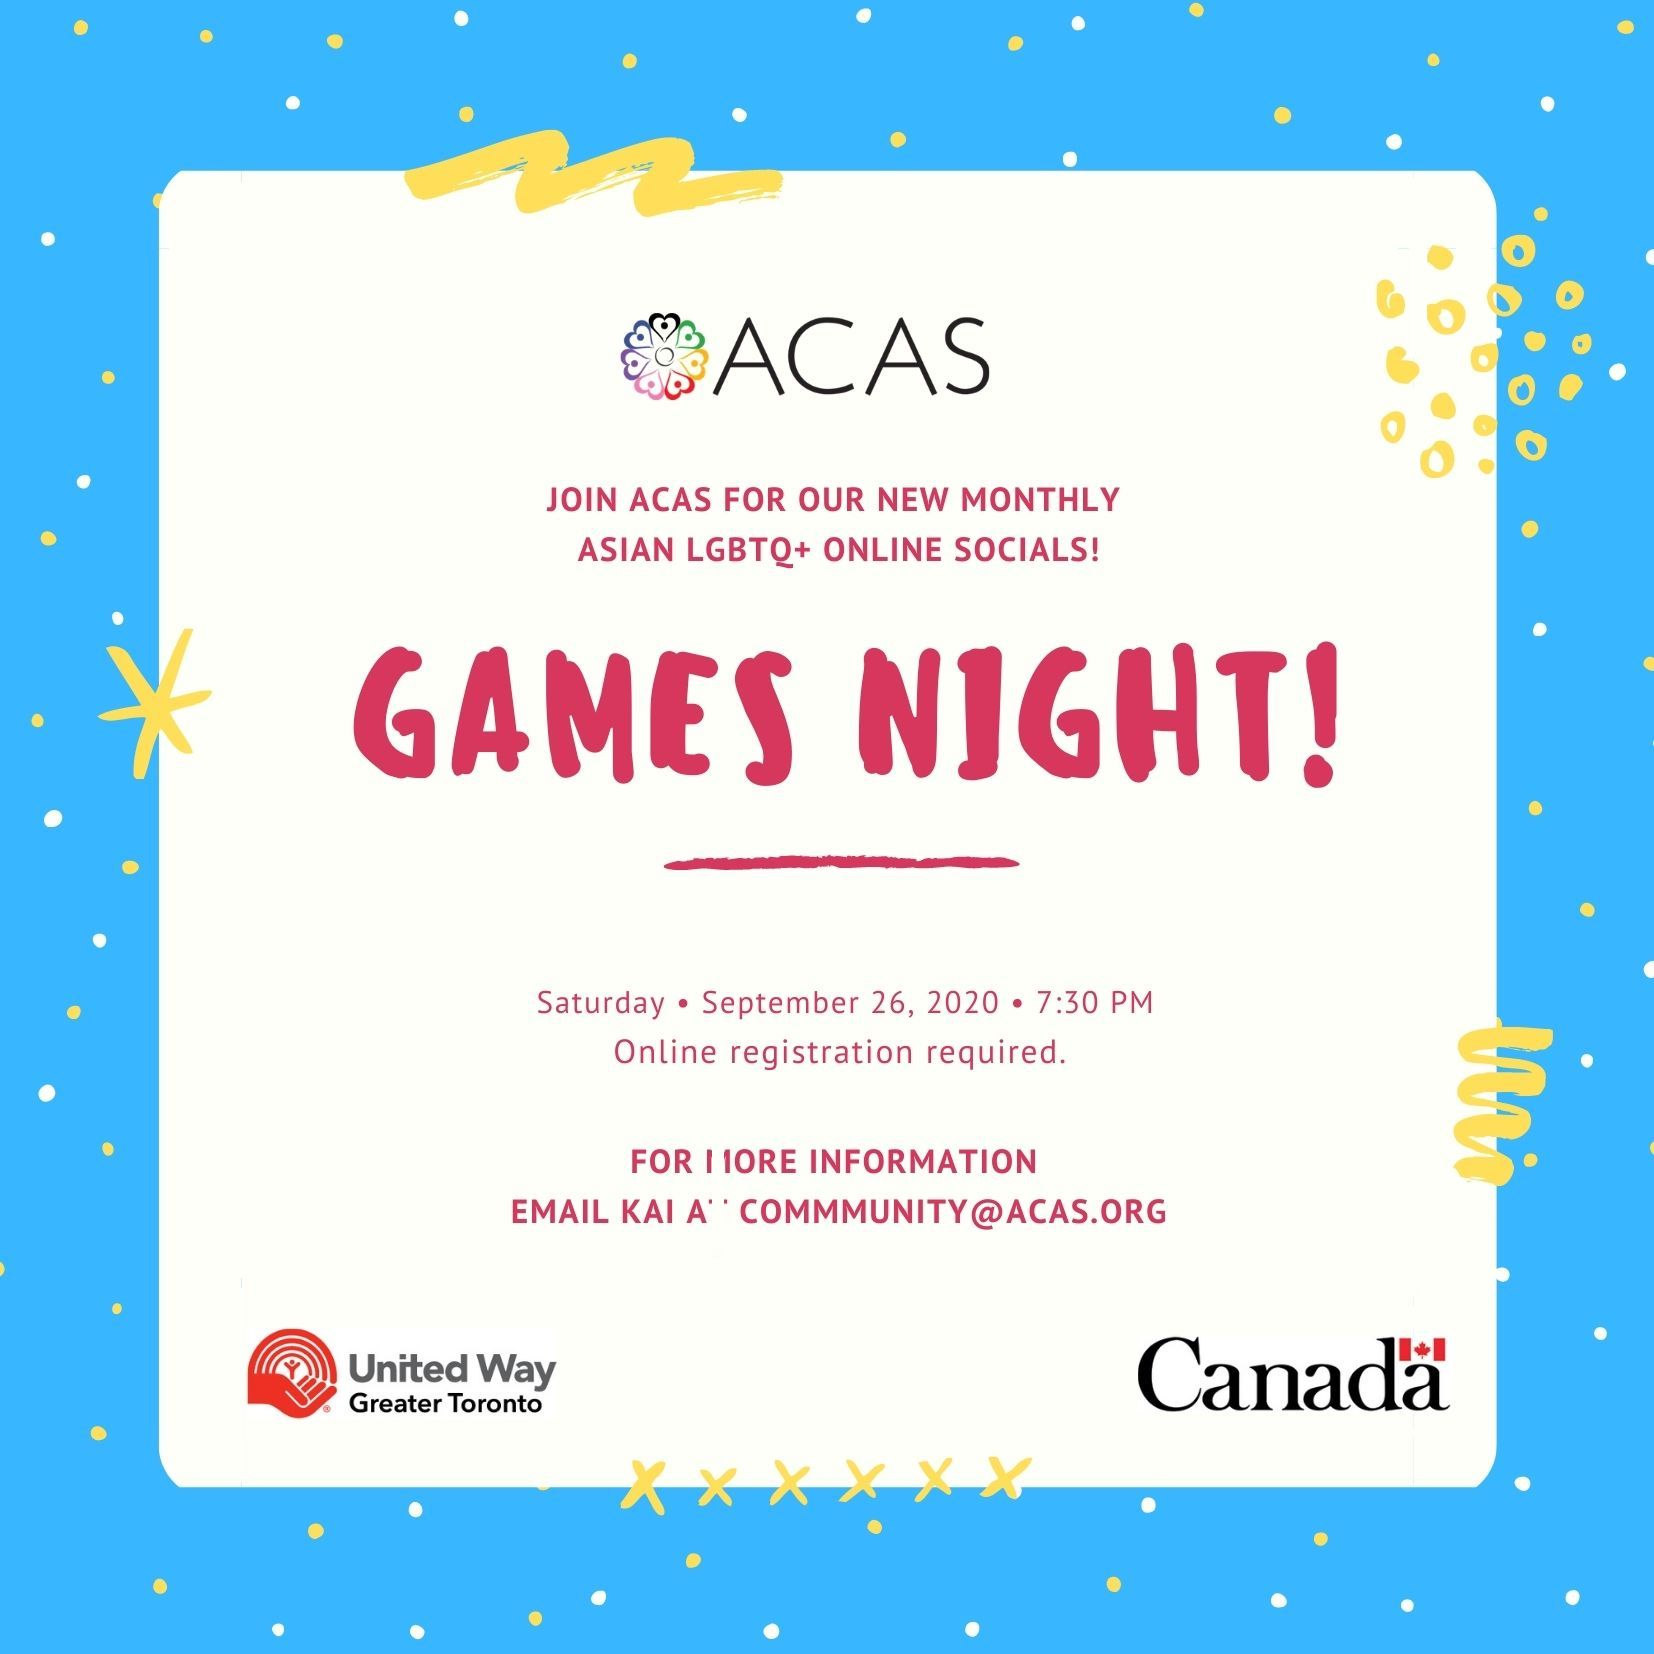 Poster for ACAS Asian LGBTQ+ Social - Games Night for September 26th from 7:30pm-9:00pm